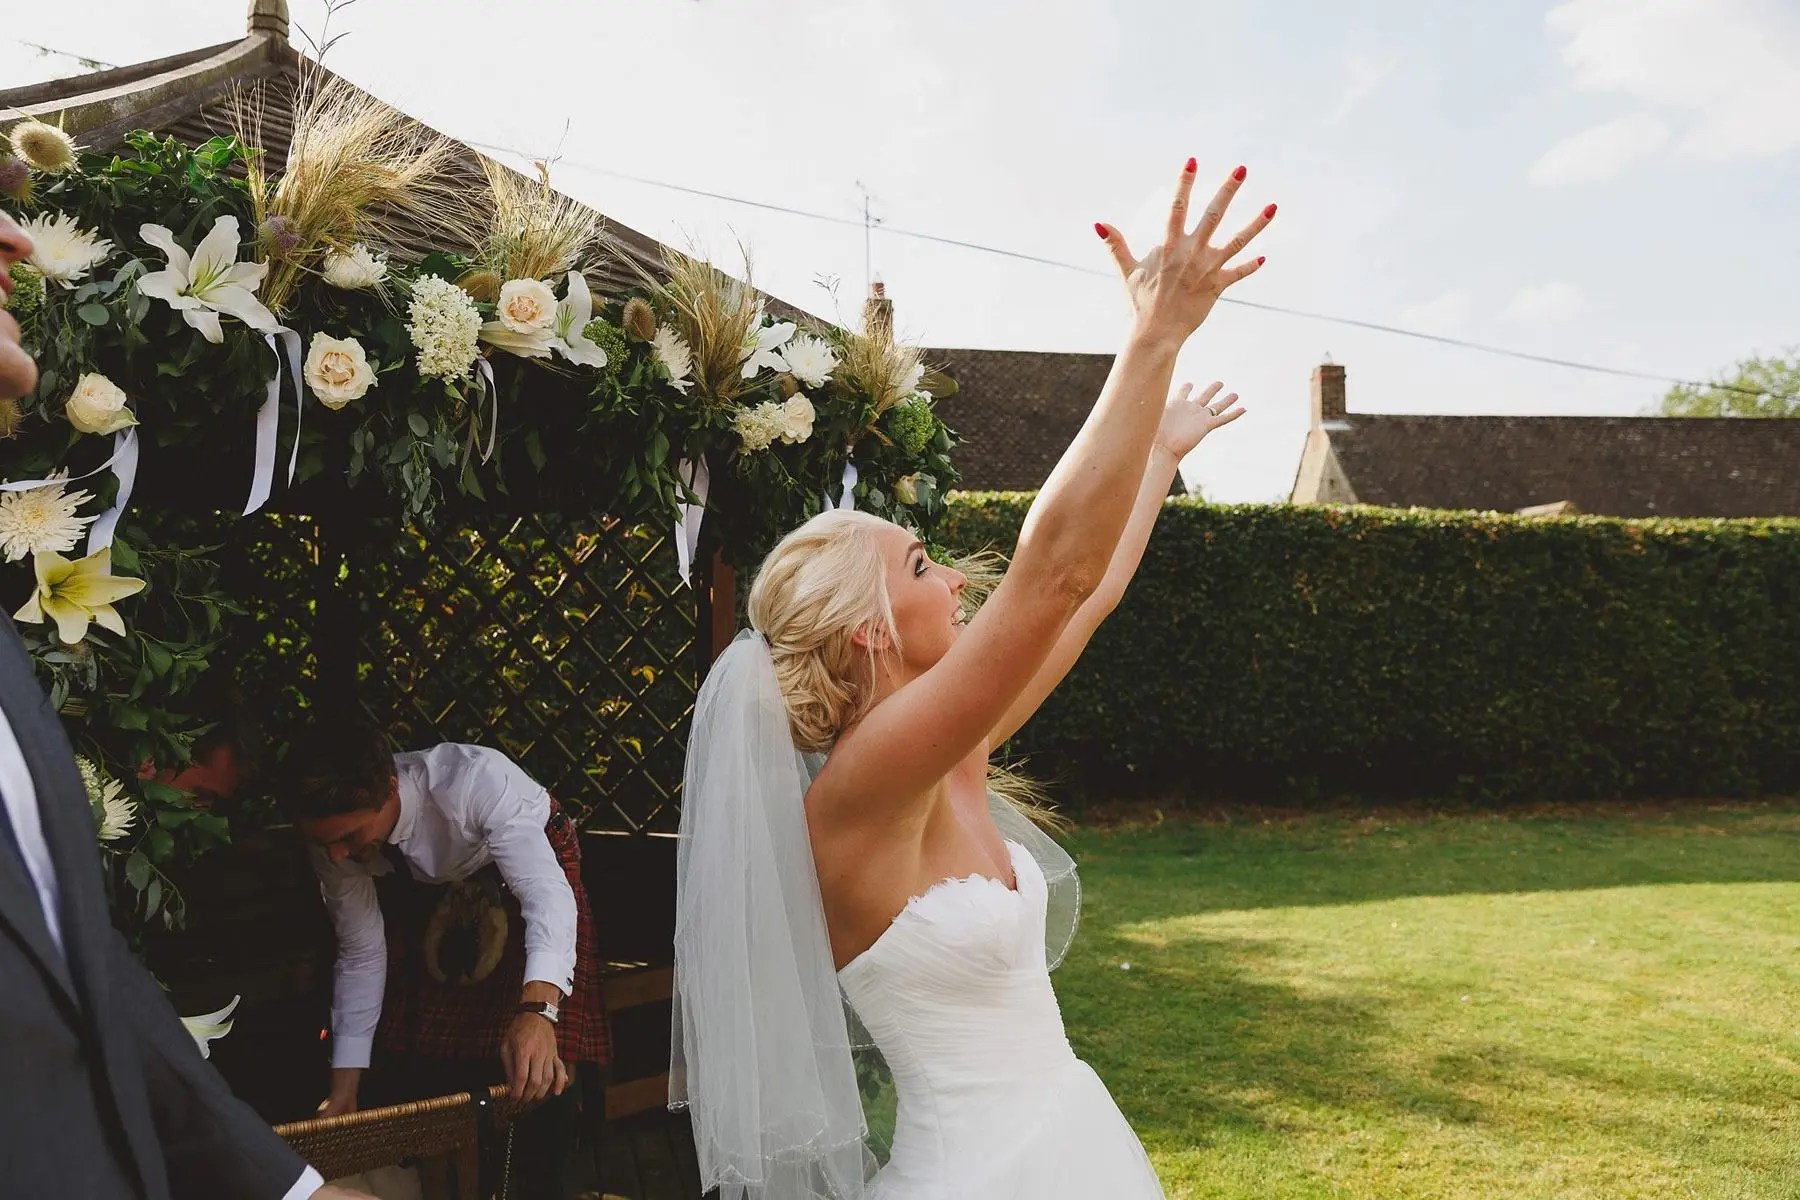 oxfordshire-wedding-photographer-044